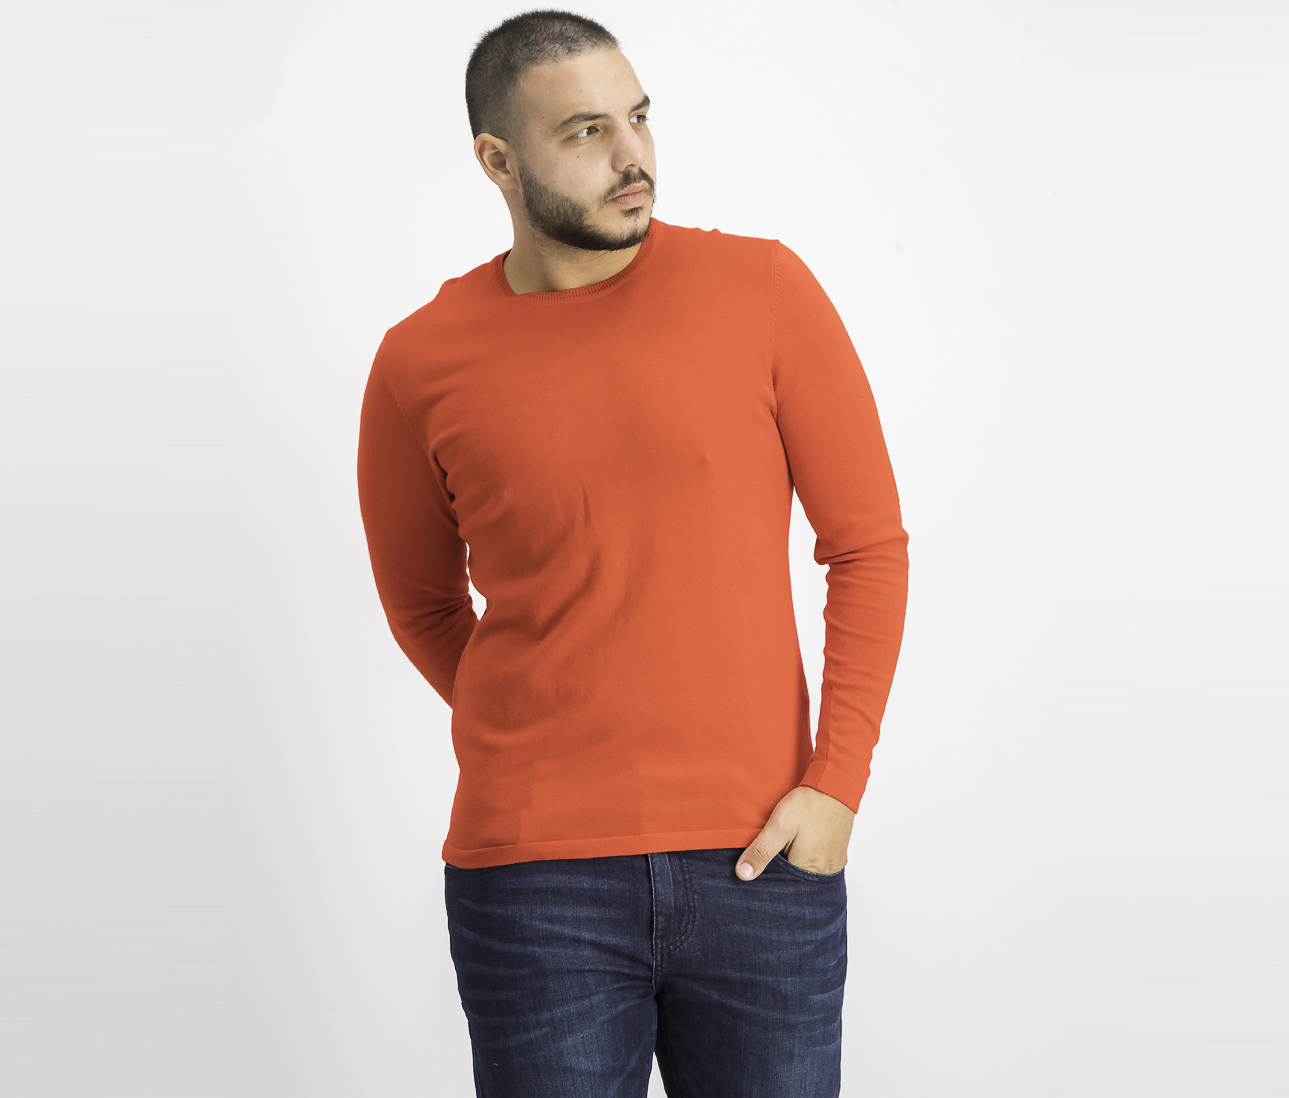 Men's Plain Long Sleeve T-Shirt, Red